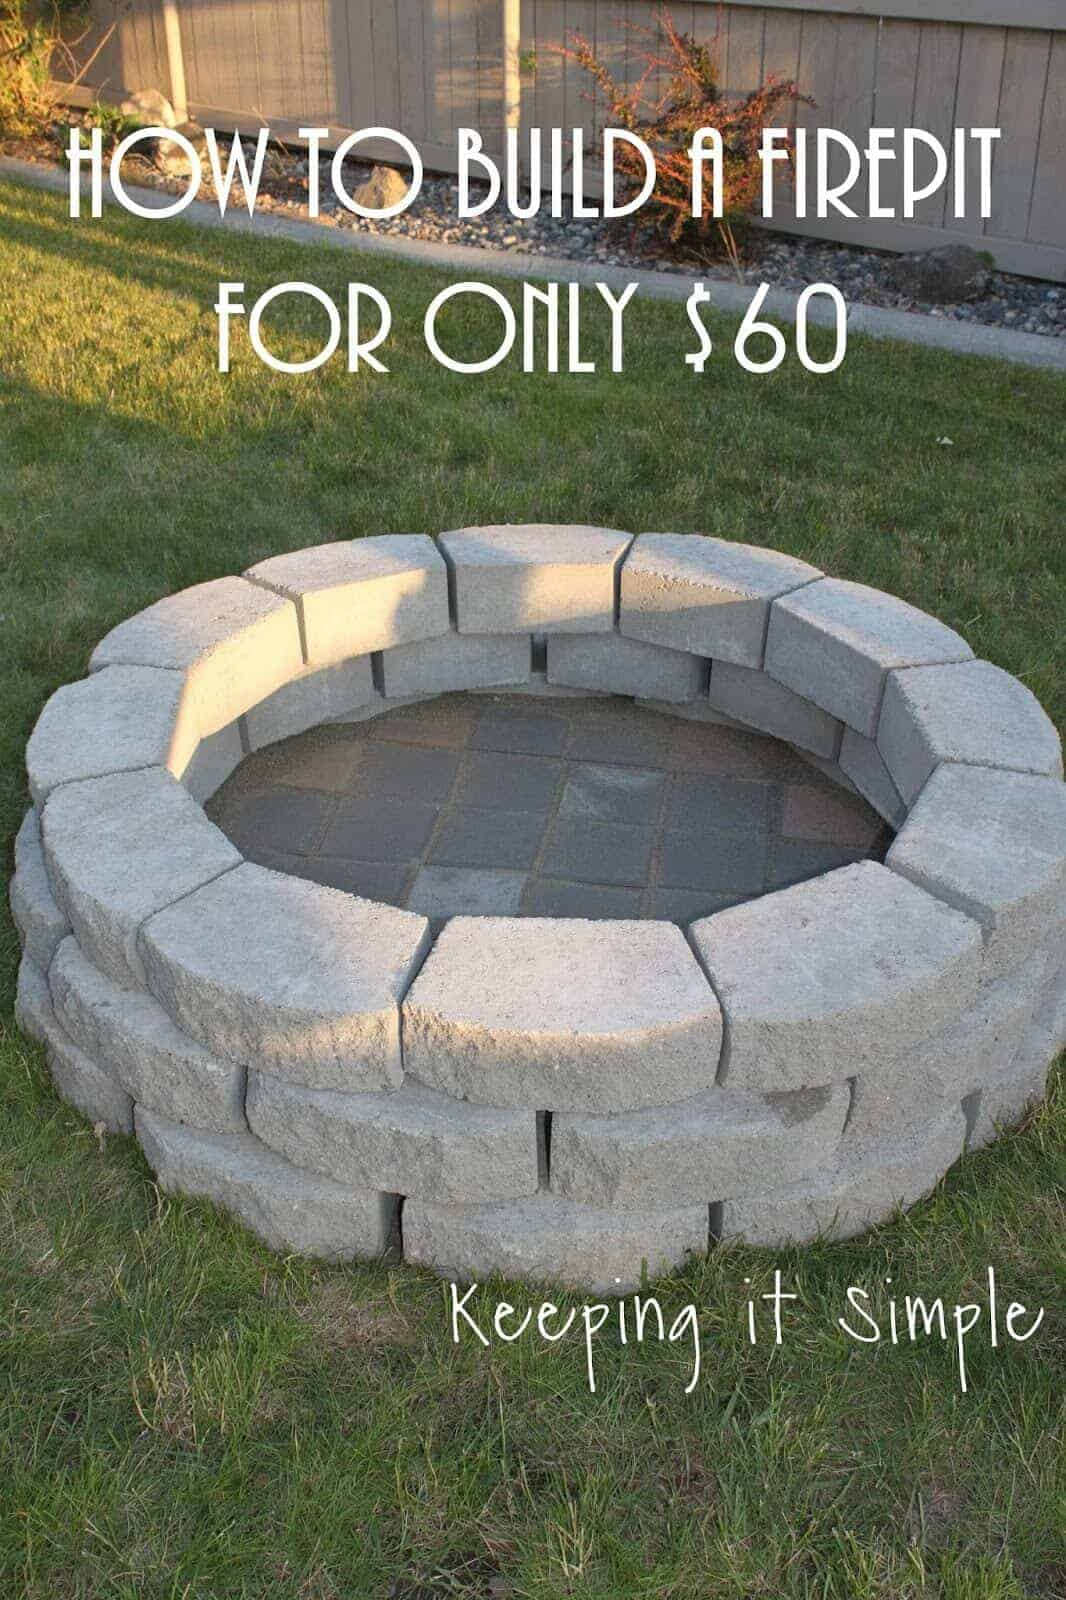 How to build a fire pit by keeping it simple crafts budget backyard project ideas